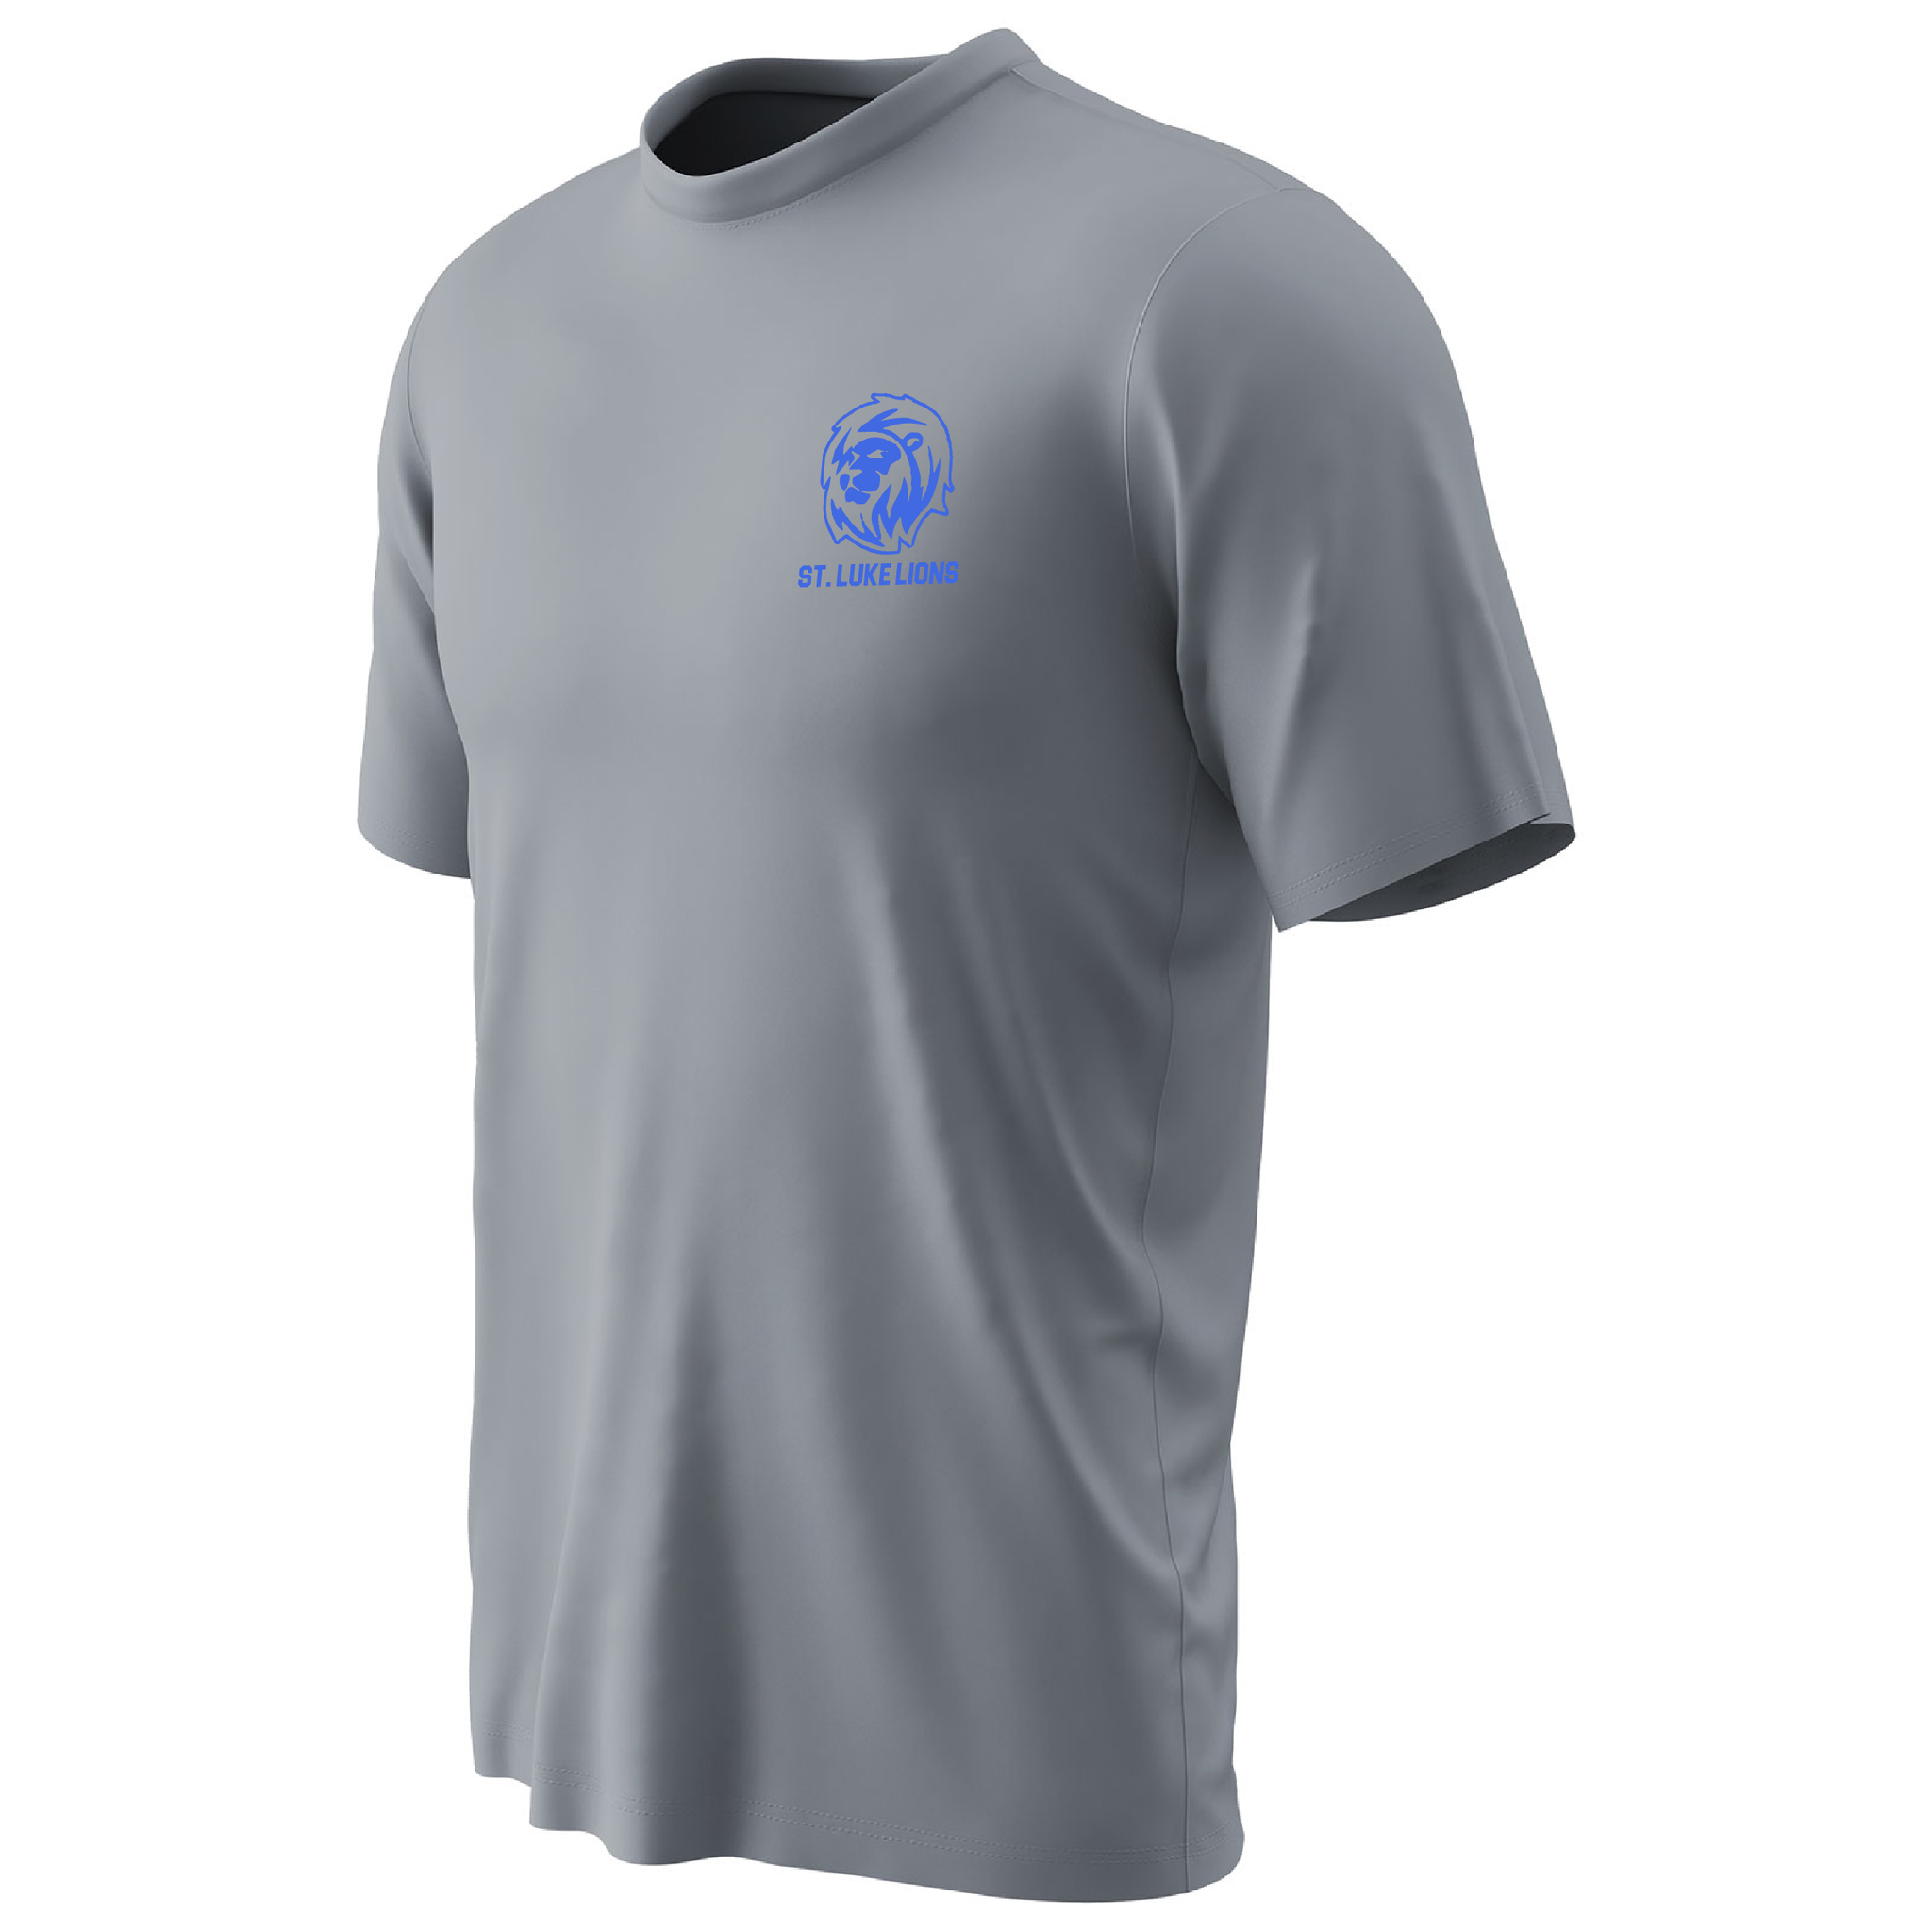 St. Luke Dri-Gear T-Shirt